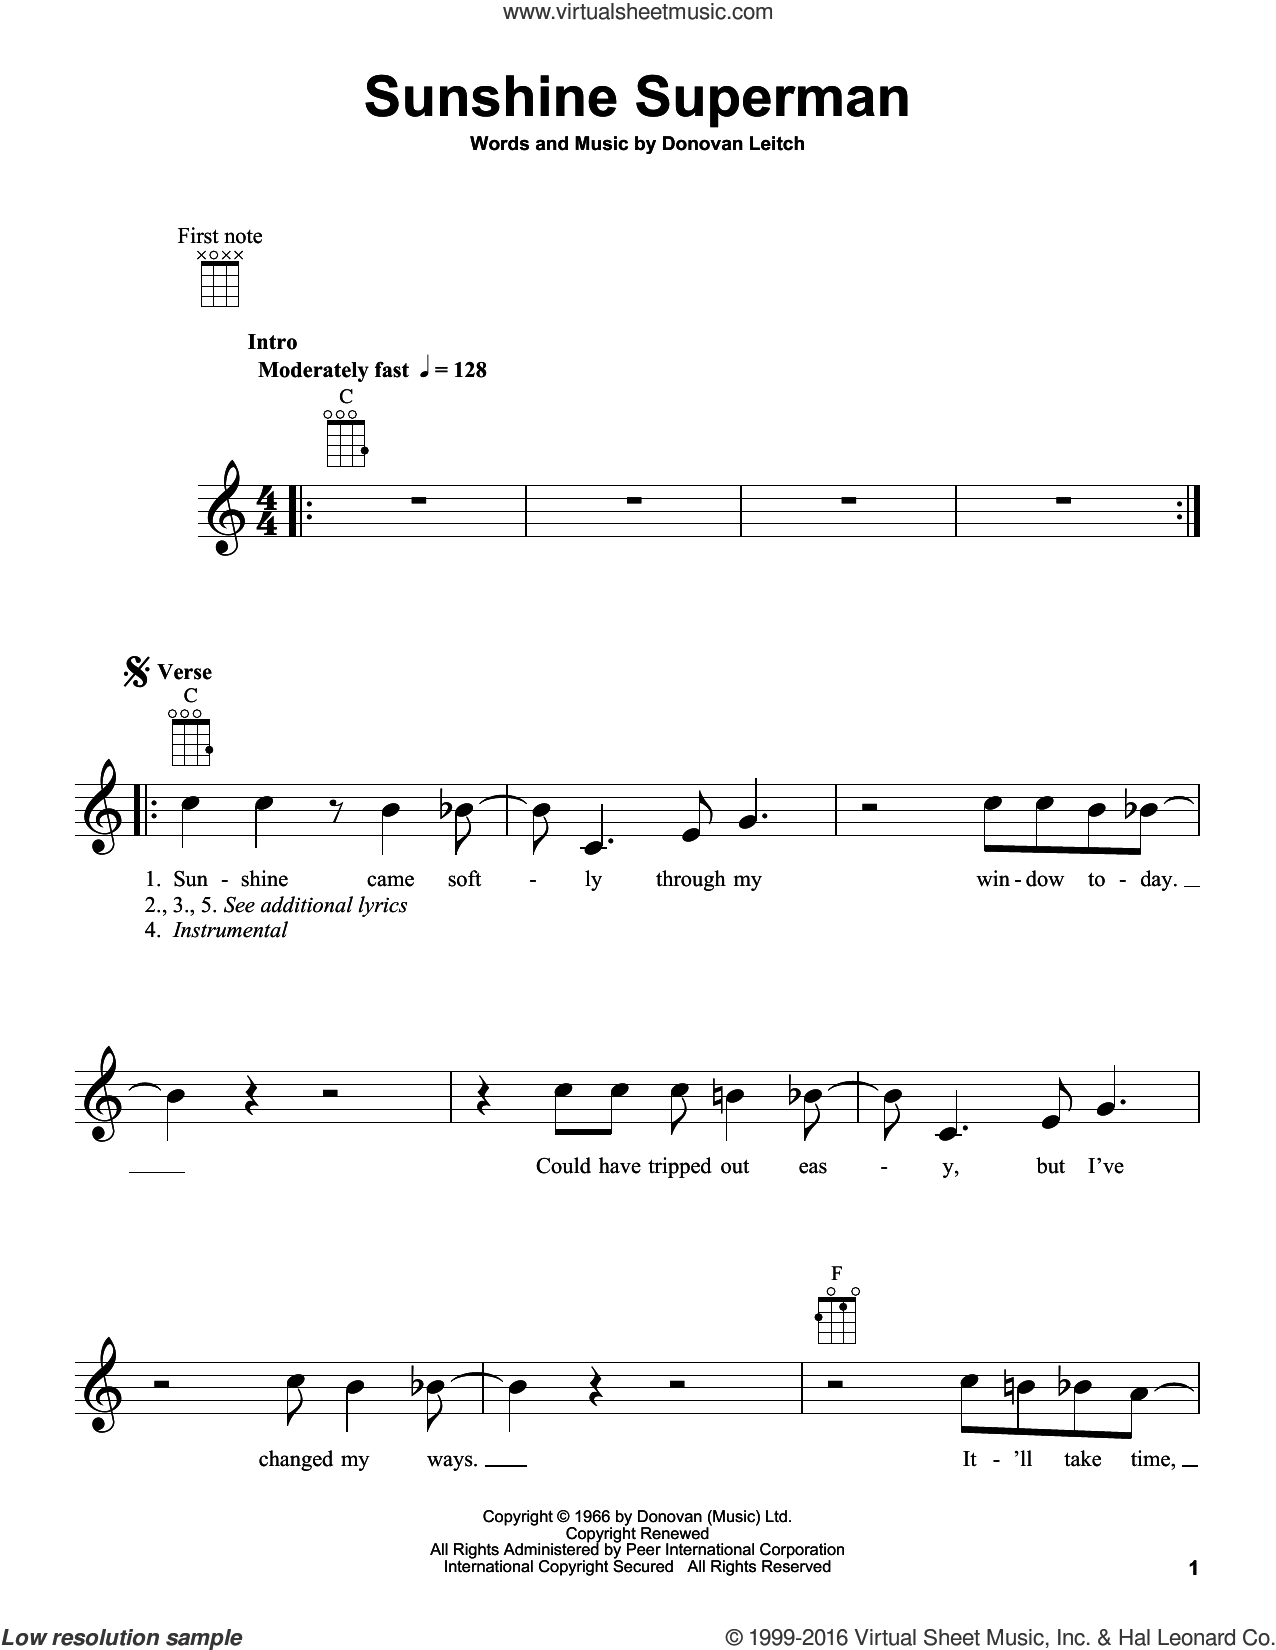 Sunshine Superman sheet music for ukulele by Donovan Leitch and Walter Donovan. Score Image Preview.